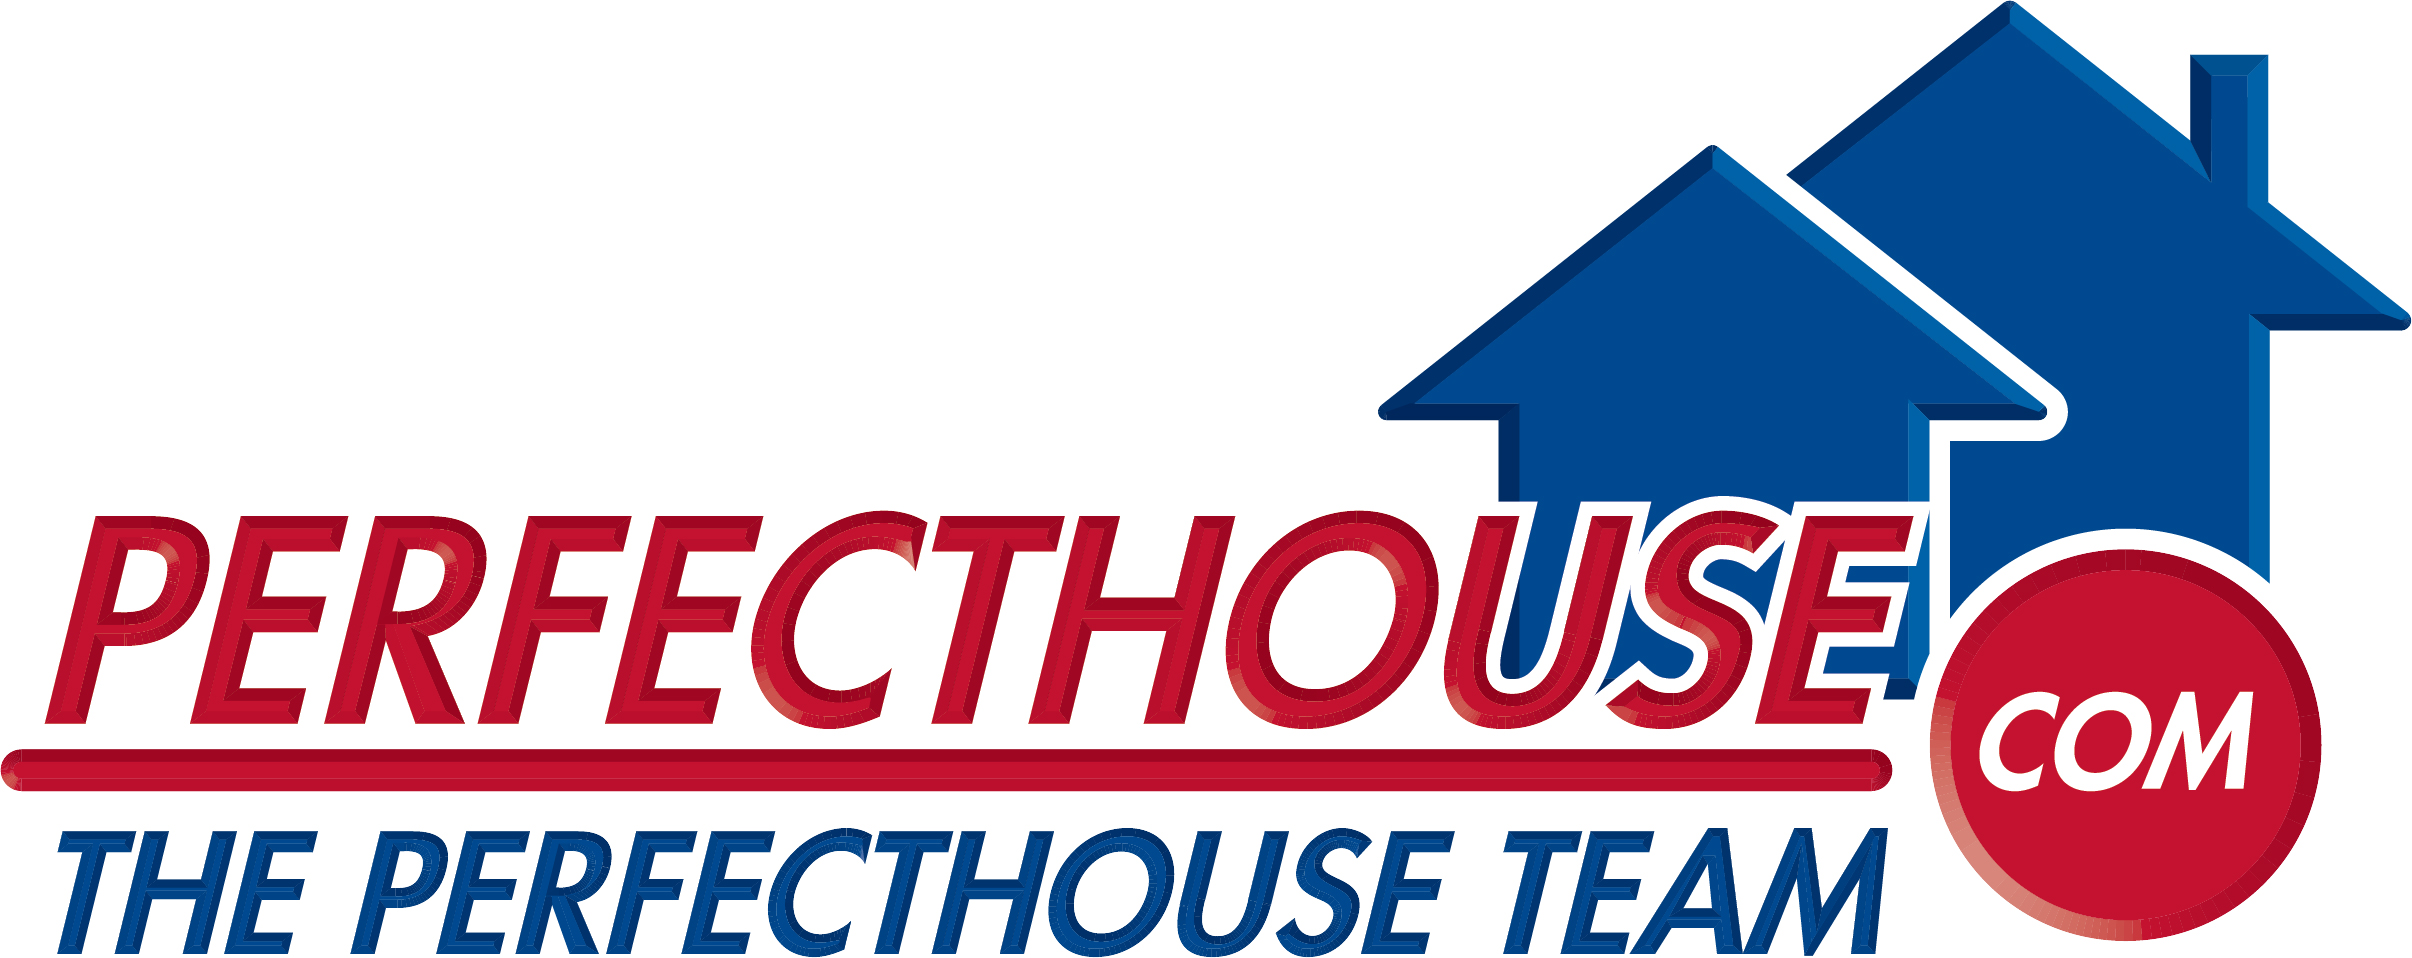 """Perfechouse Team Logo. """"Perfect House Team"""" is in red and blue letters against two blue houses."""